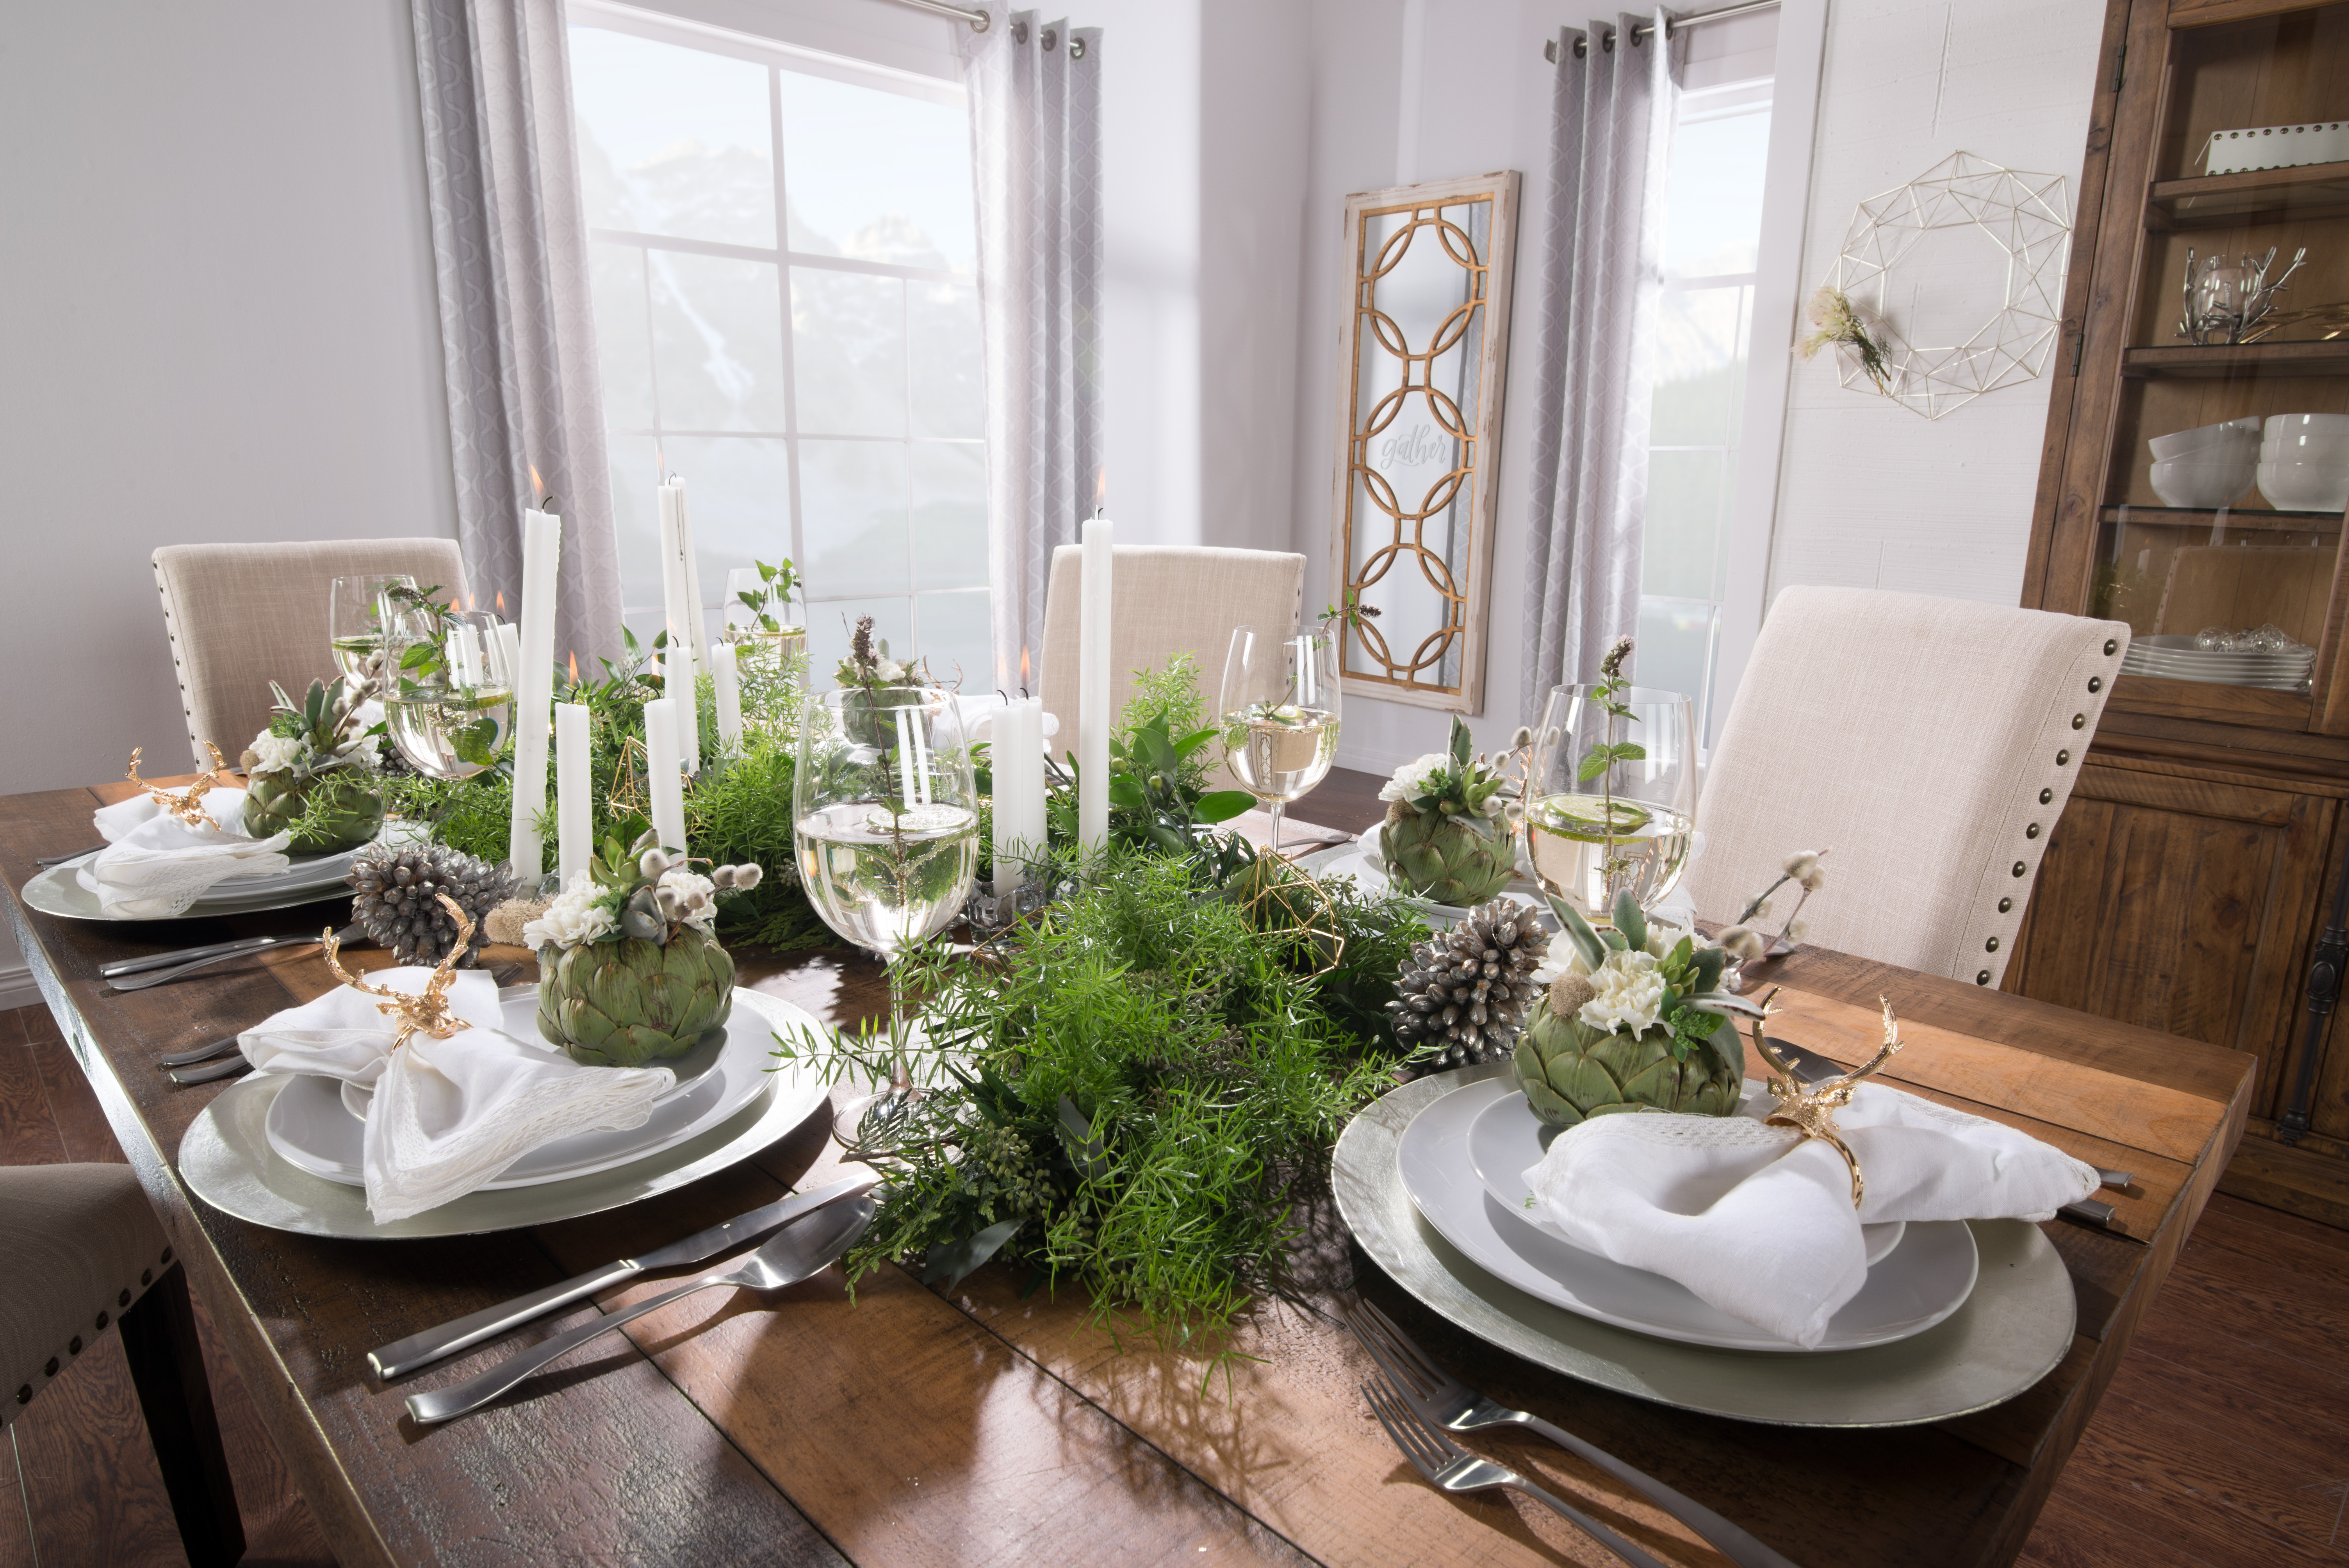 Home Decor Winter Table Setting Inspiration With